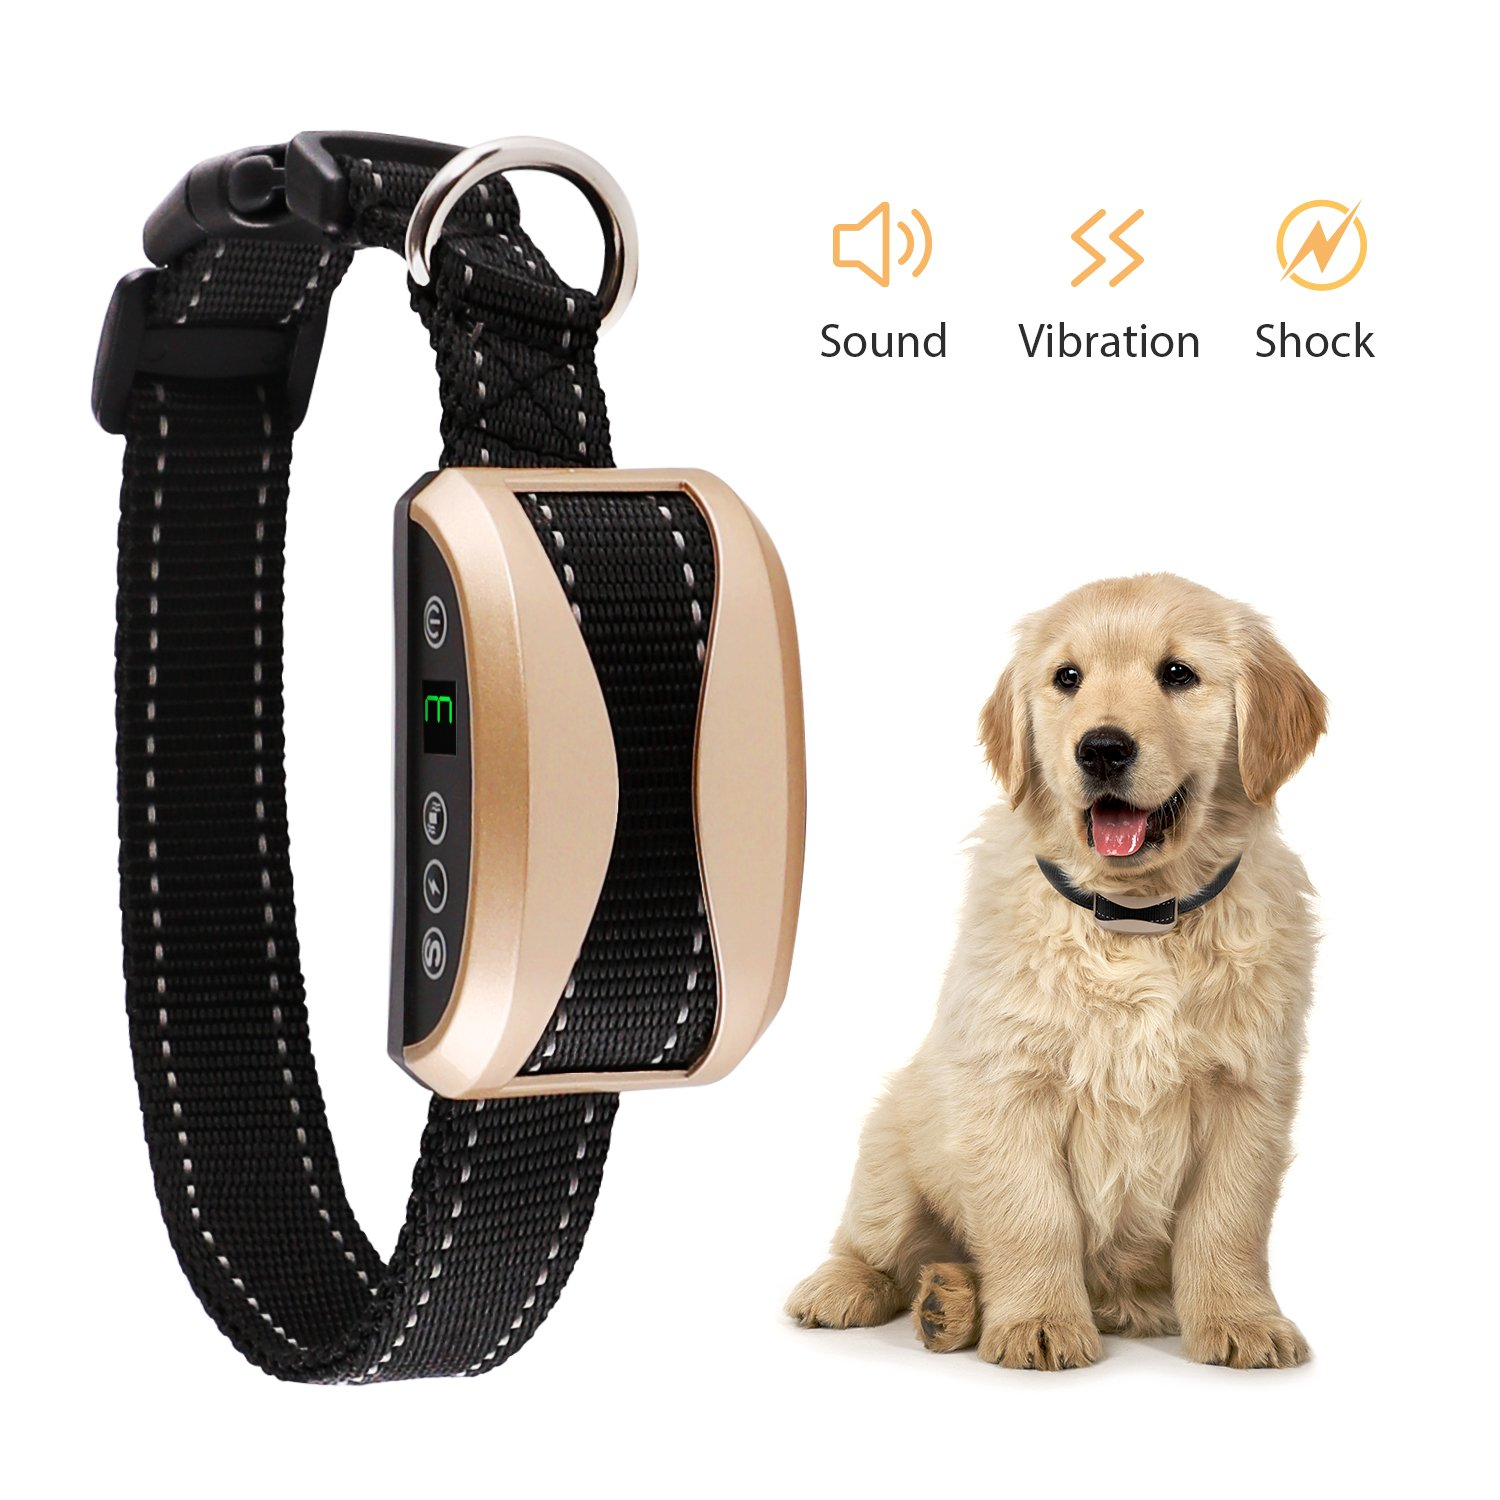 Bark Collar [2018 Smart Chip] Dog Shock Anti-Barking Collar with Beep, Vibration and Harmless Shock Rechargeable No Bark Control for Small/ Medium/ Large Dogs  with 7 Sensitivity Levels.